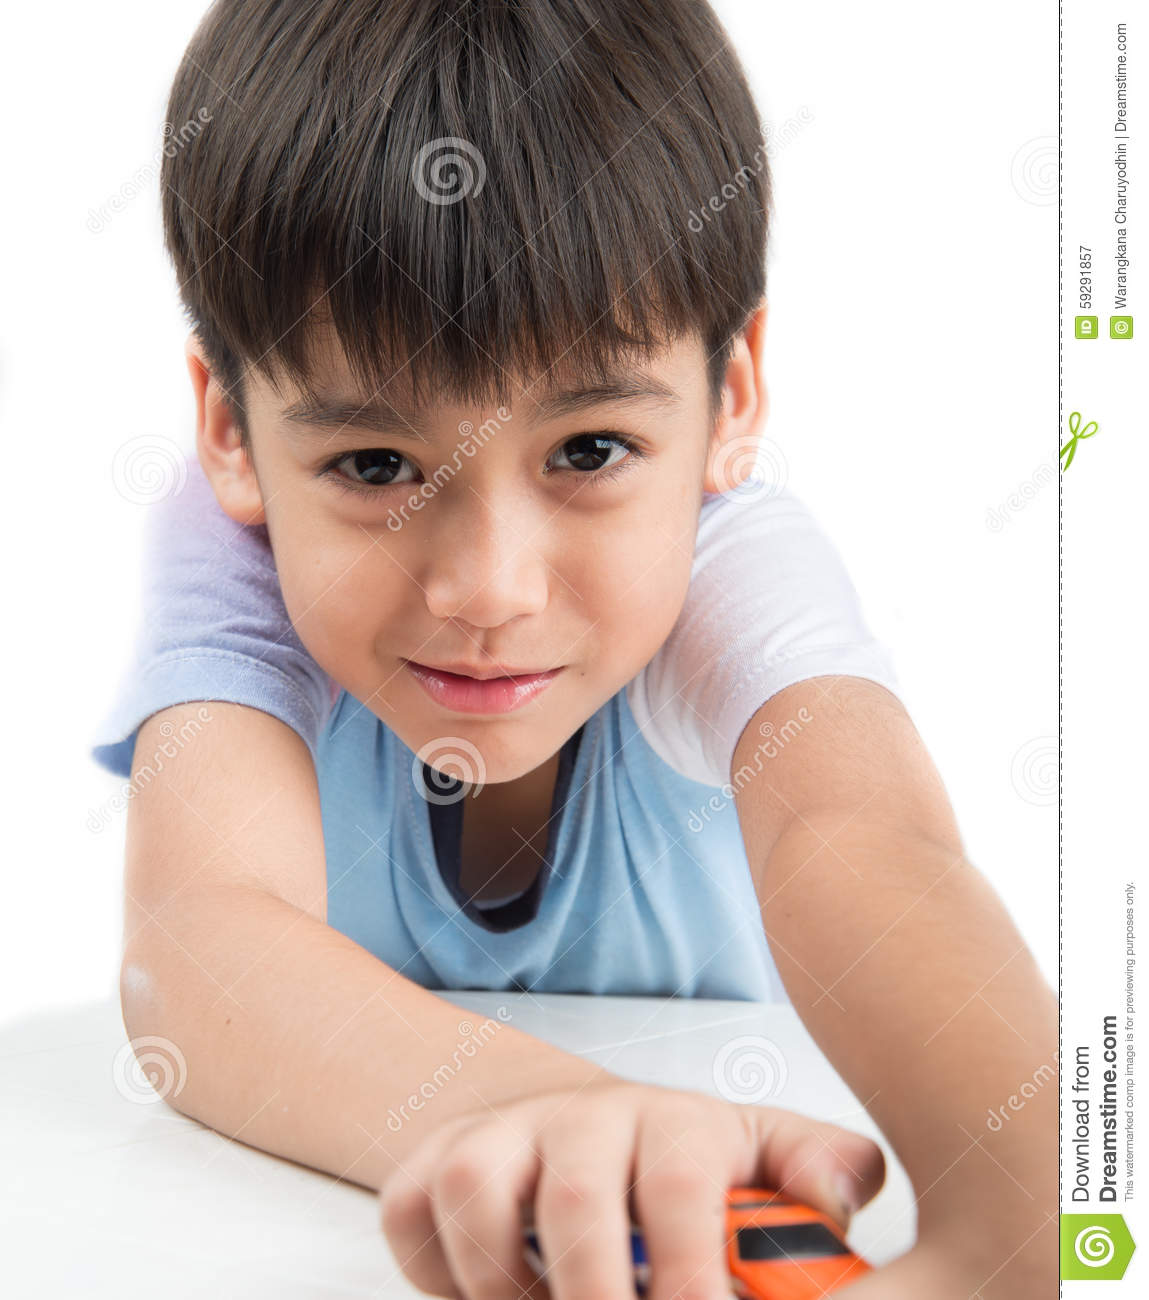 Little Boys Toys Border : Little boy playing with toy cars royalty free stock photo